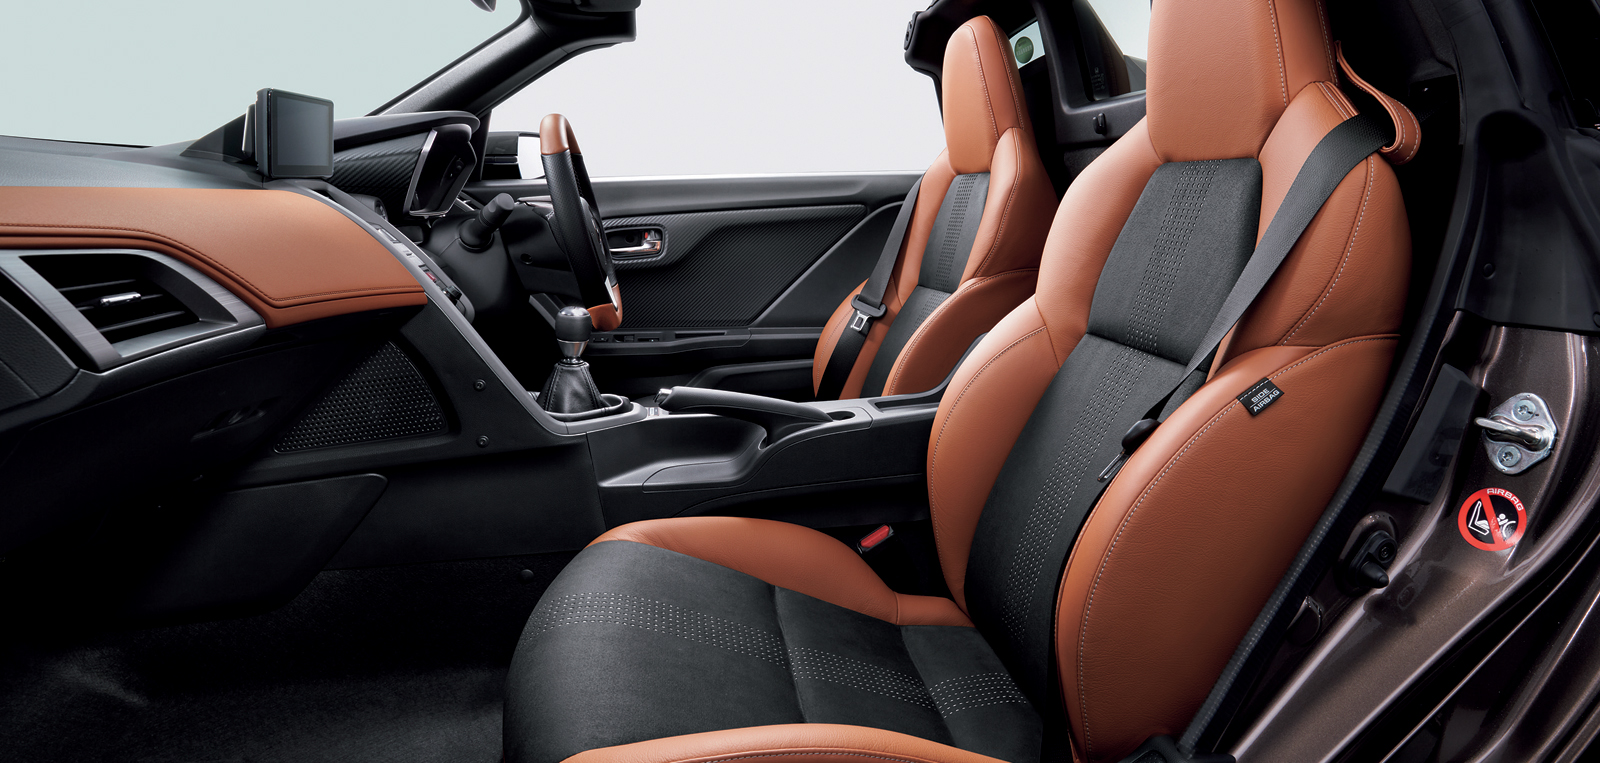 Honda S660 Interior >> Honda S660 Bruno Leather Edition Turns Shifting Into A Game | Carscoops